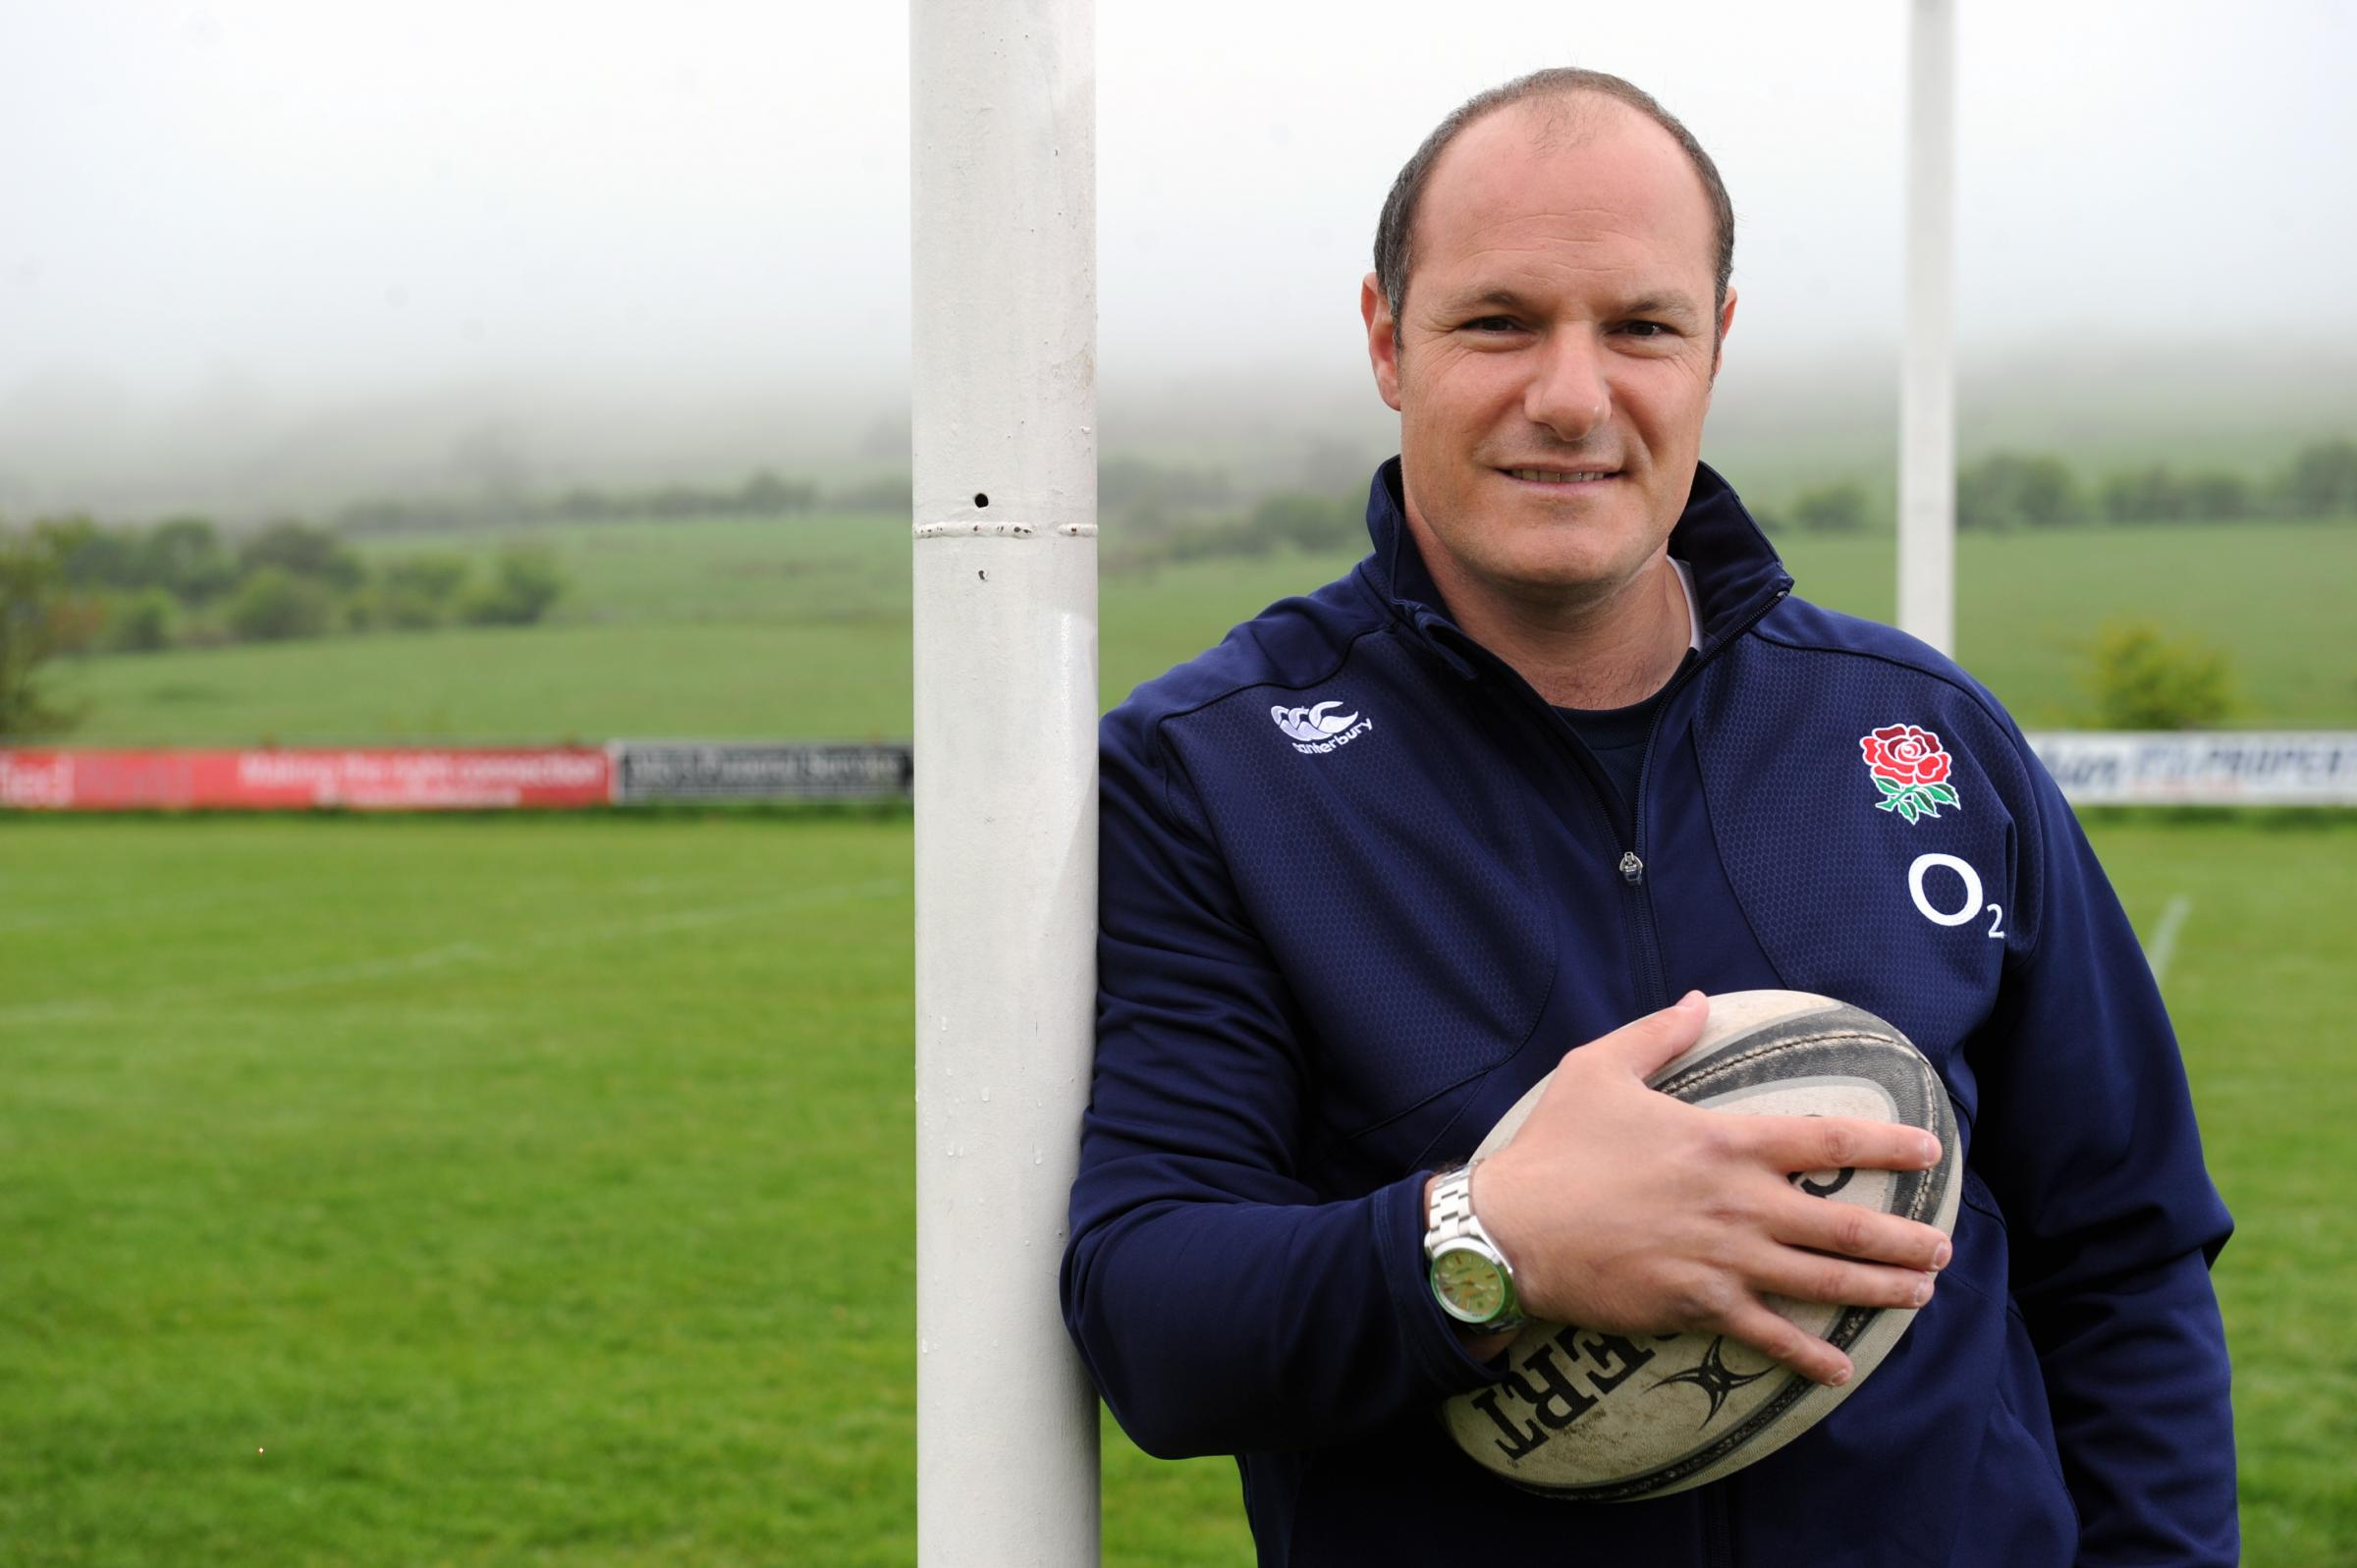 Dino Radice, director of rugby and first team coach at Blackburn RUFC, Ramsgreave Drive, Blackburn. Picture by Paul Heyes, Friday May 22, 2015..